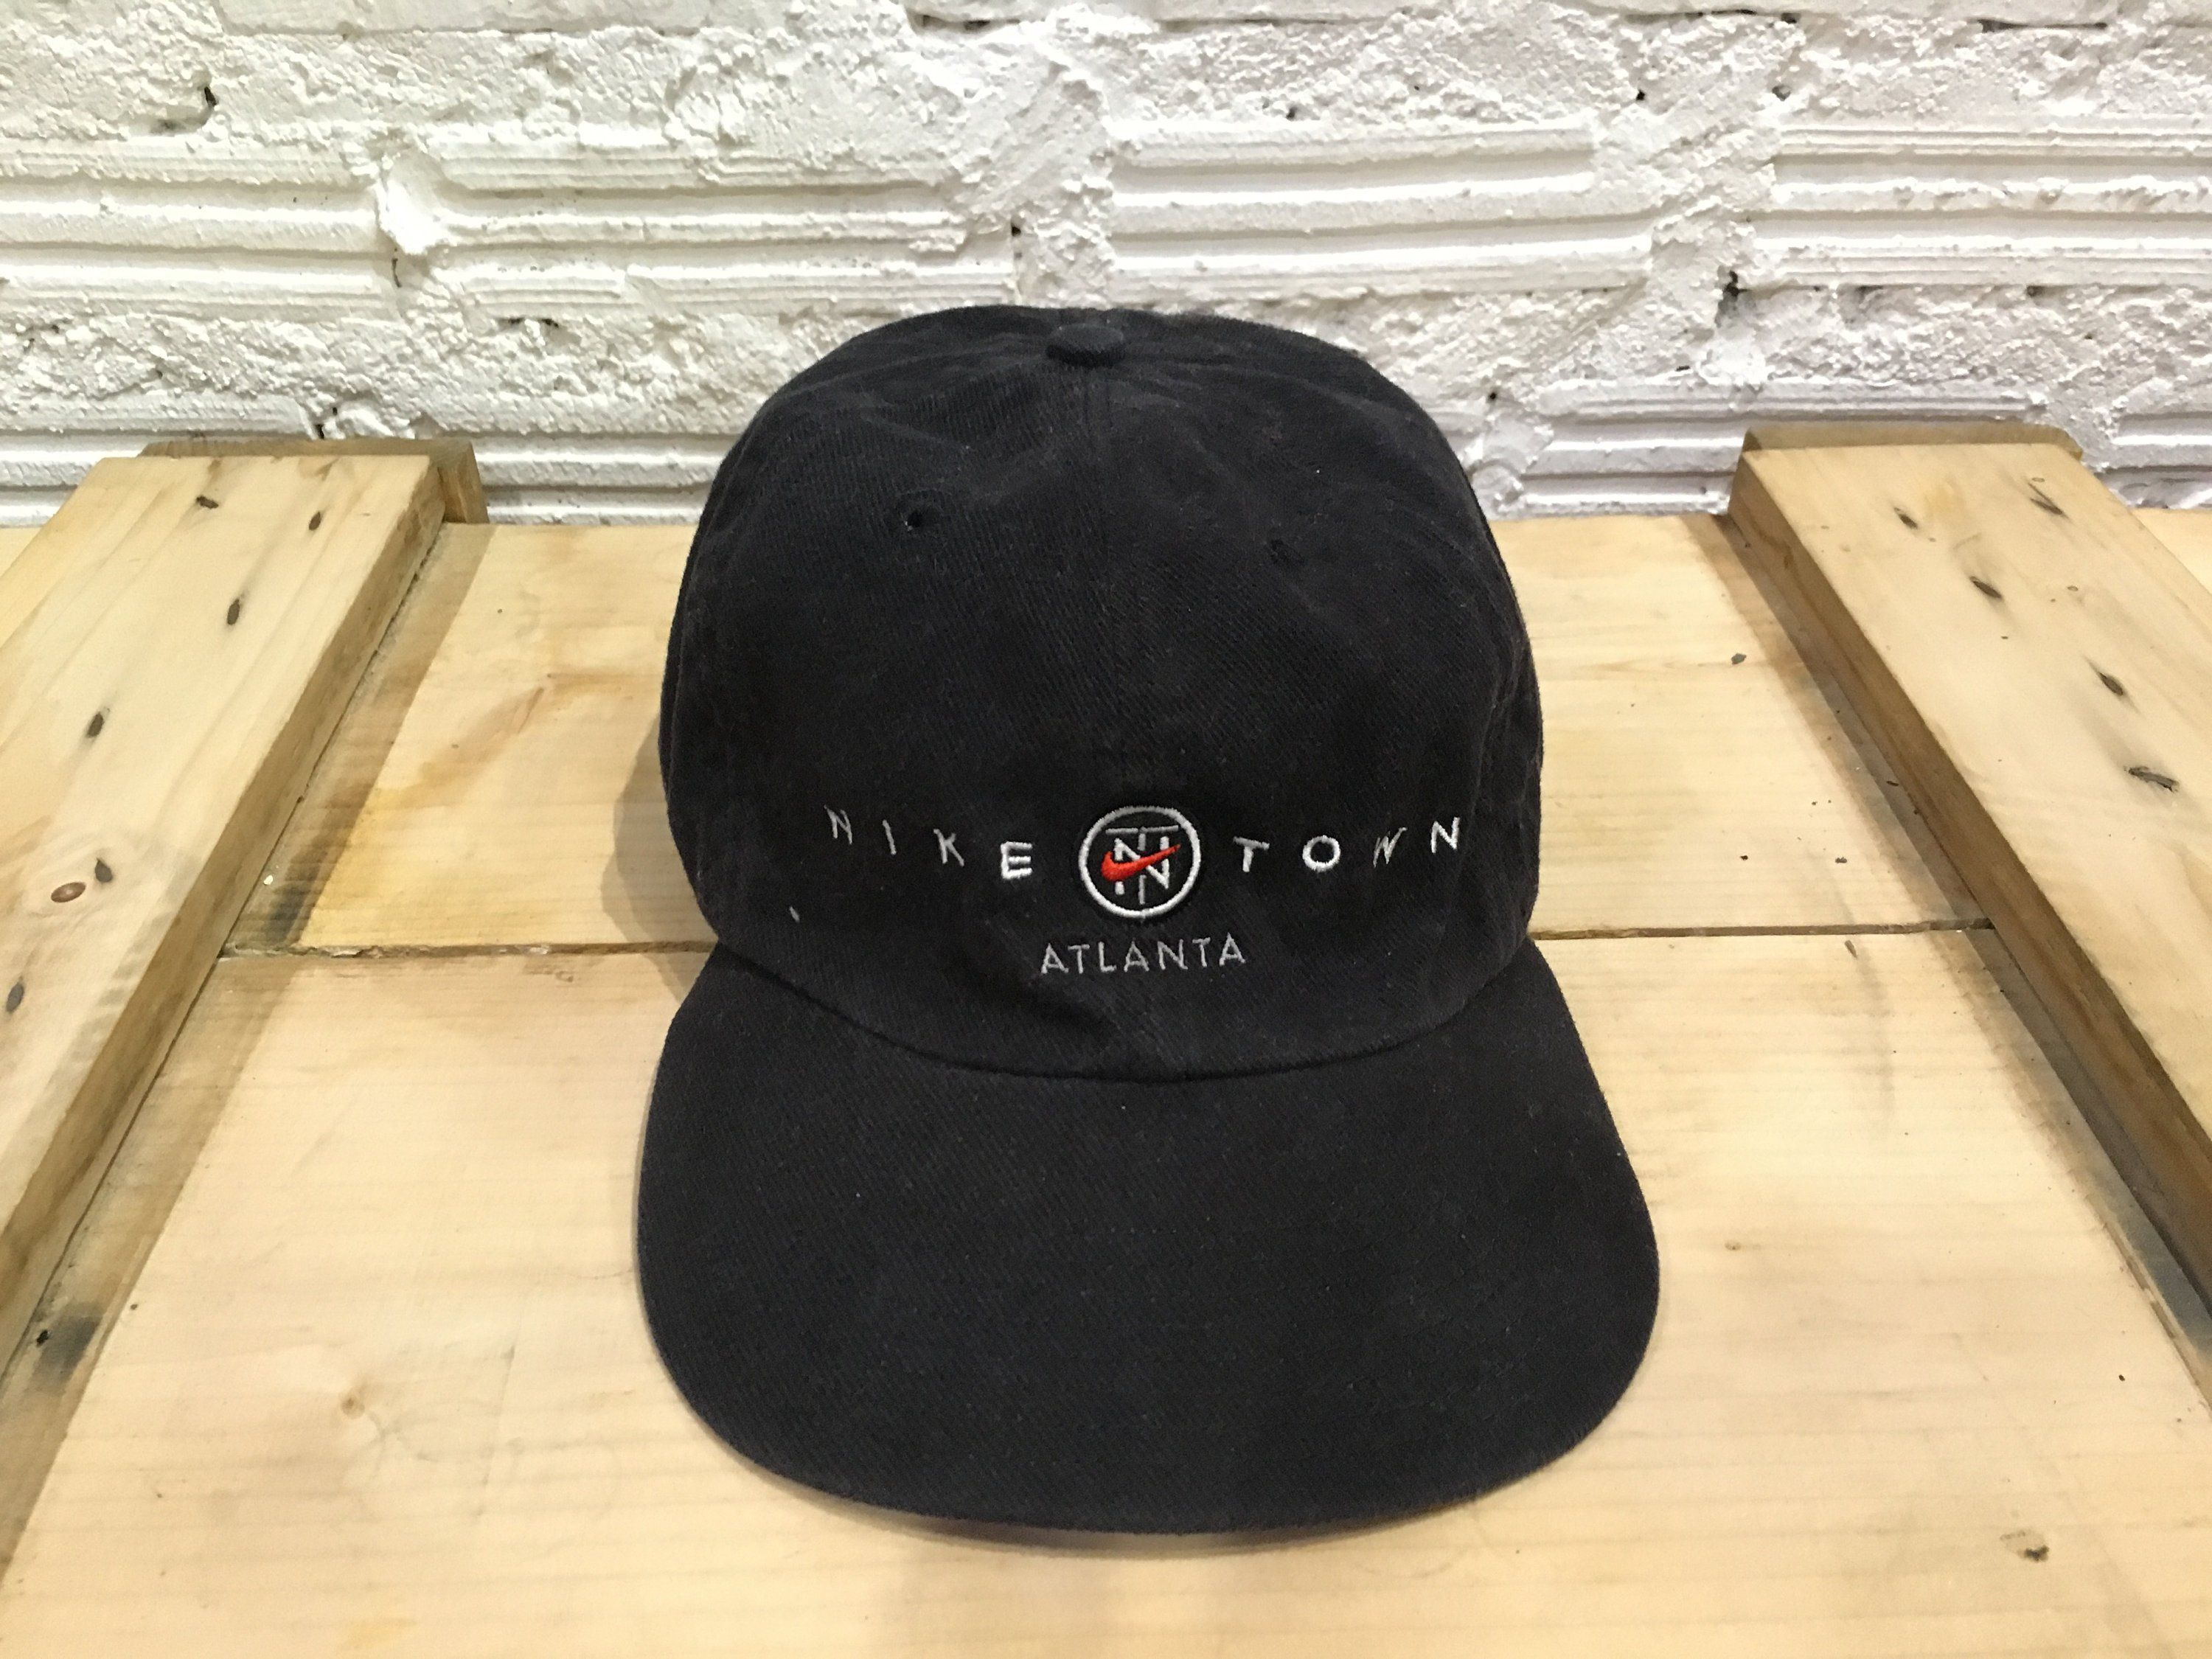 ce44490bc25 Vintage Nike cap Nike TN logo Nike town Atlanta spell out embroidered  adjustable cap strapback Black Good condition by AlivevintageShop on Etsy